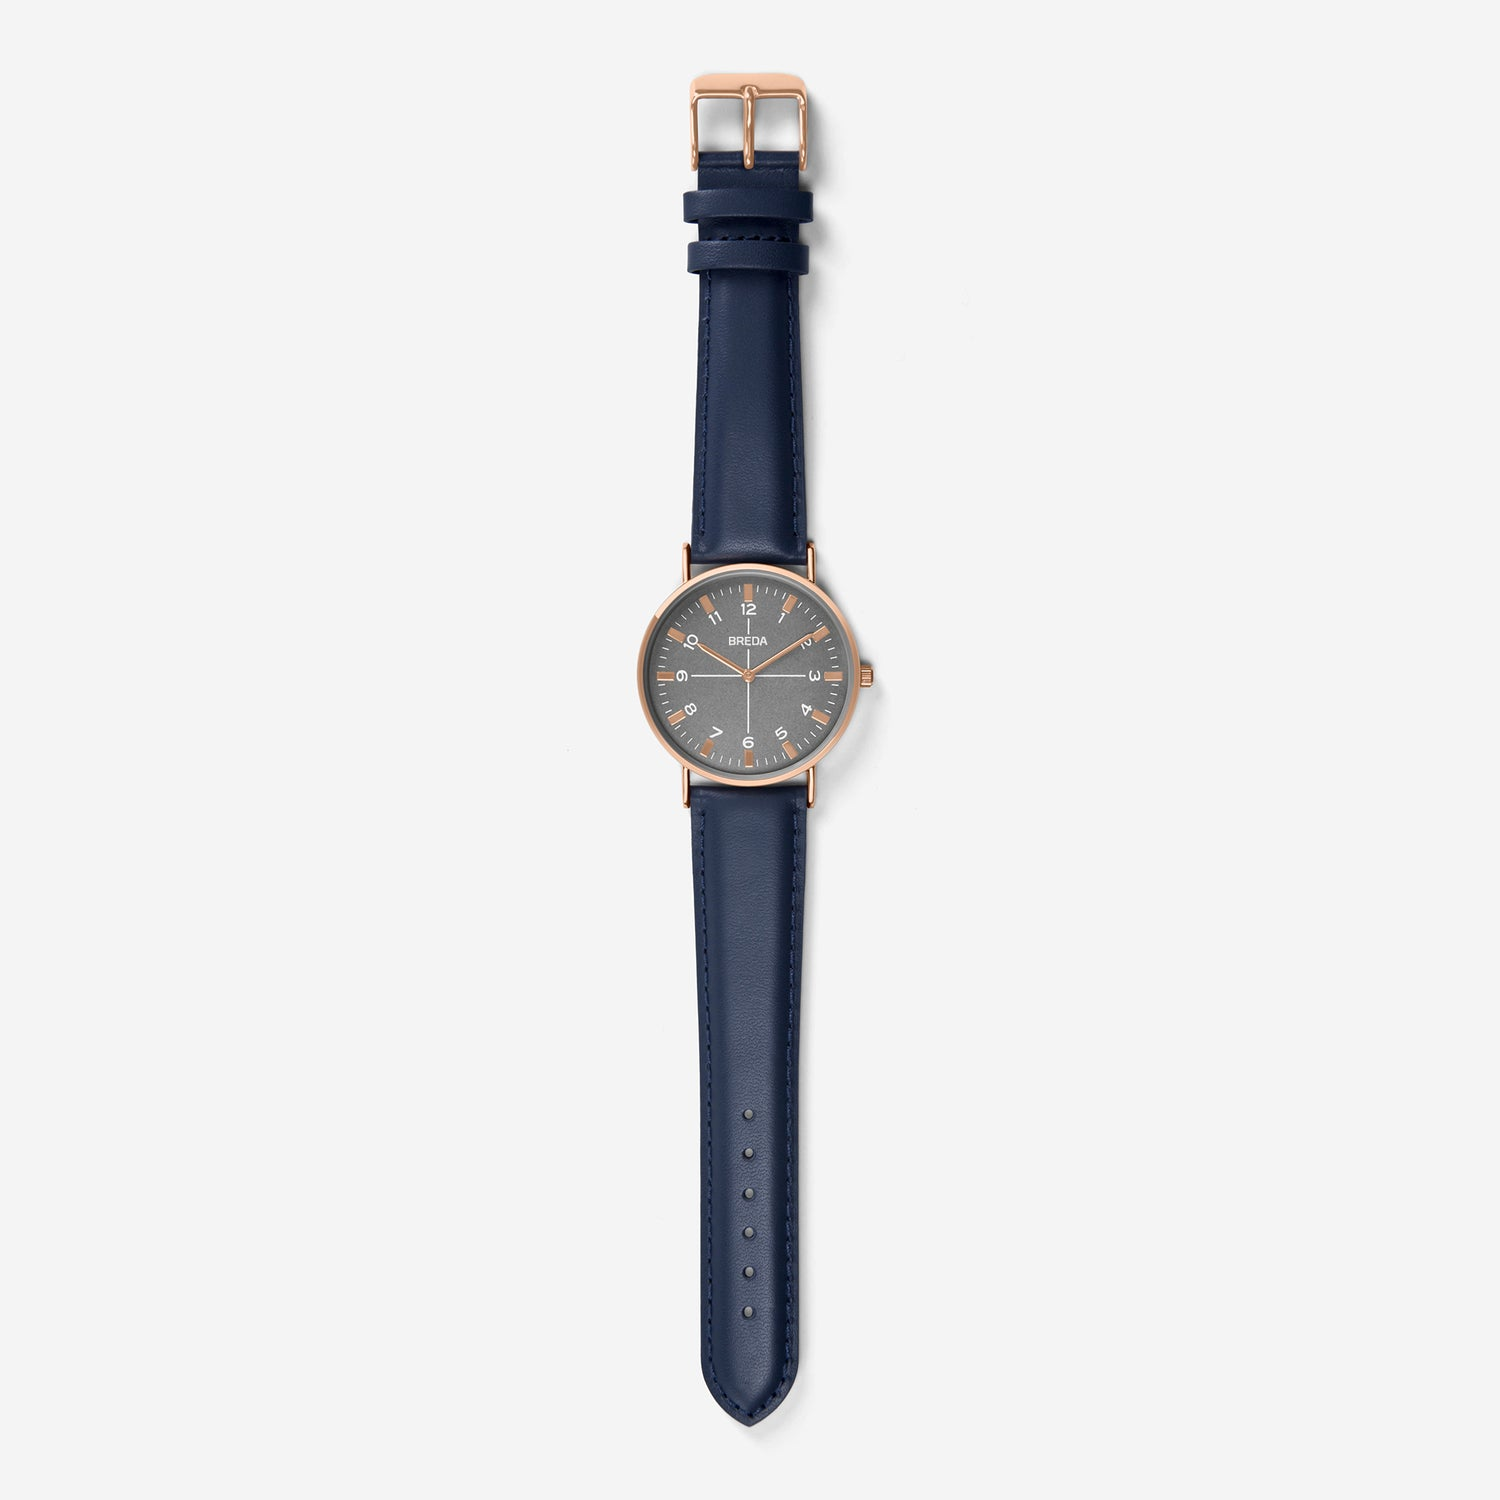 breda-belmont-1646h-rosegold-navy-watch-long